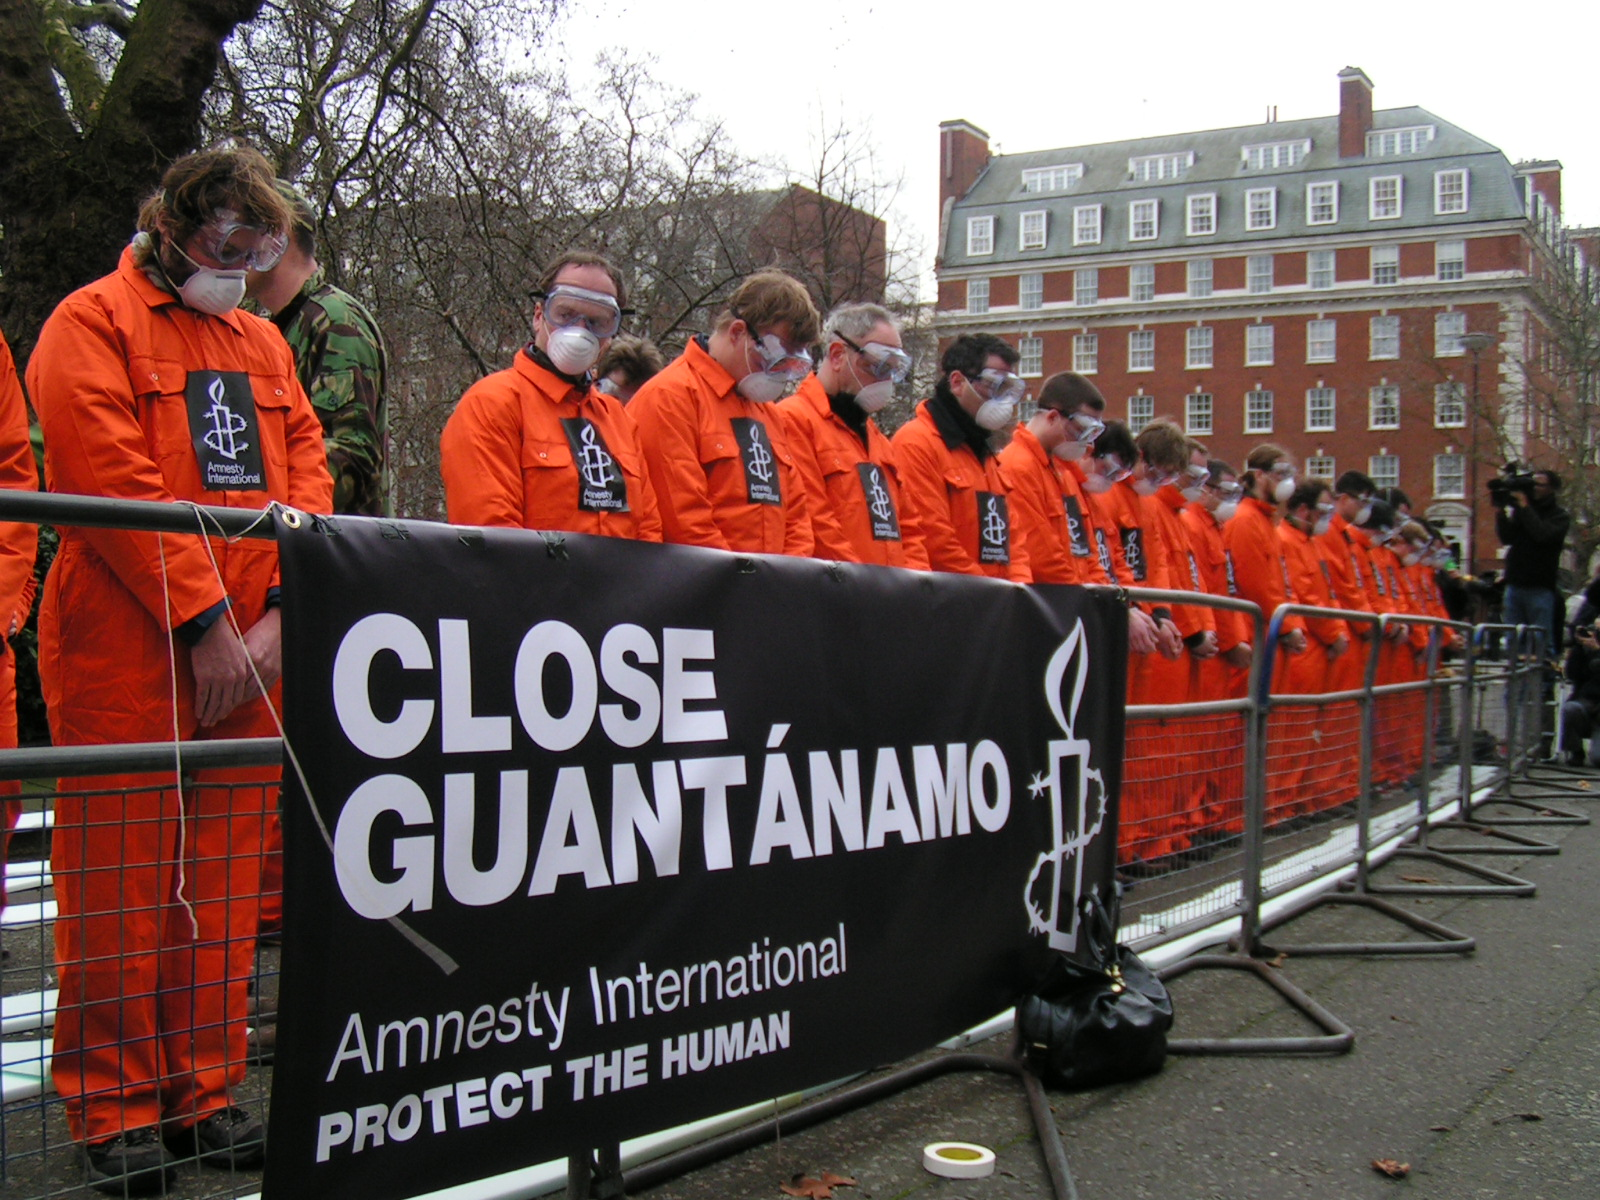 Mass demonstration of hunger strikers outside the US embassy in London, England demanding that the Guantanamo Bay prison is shut down